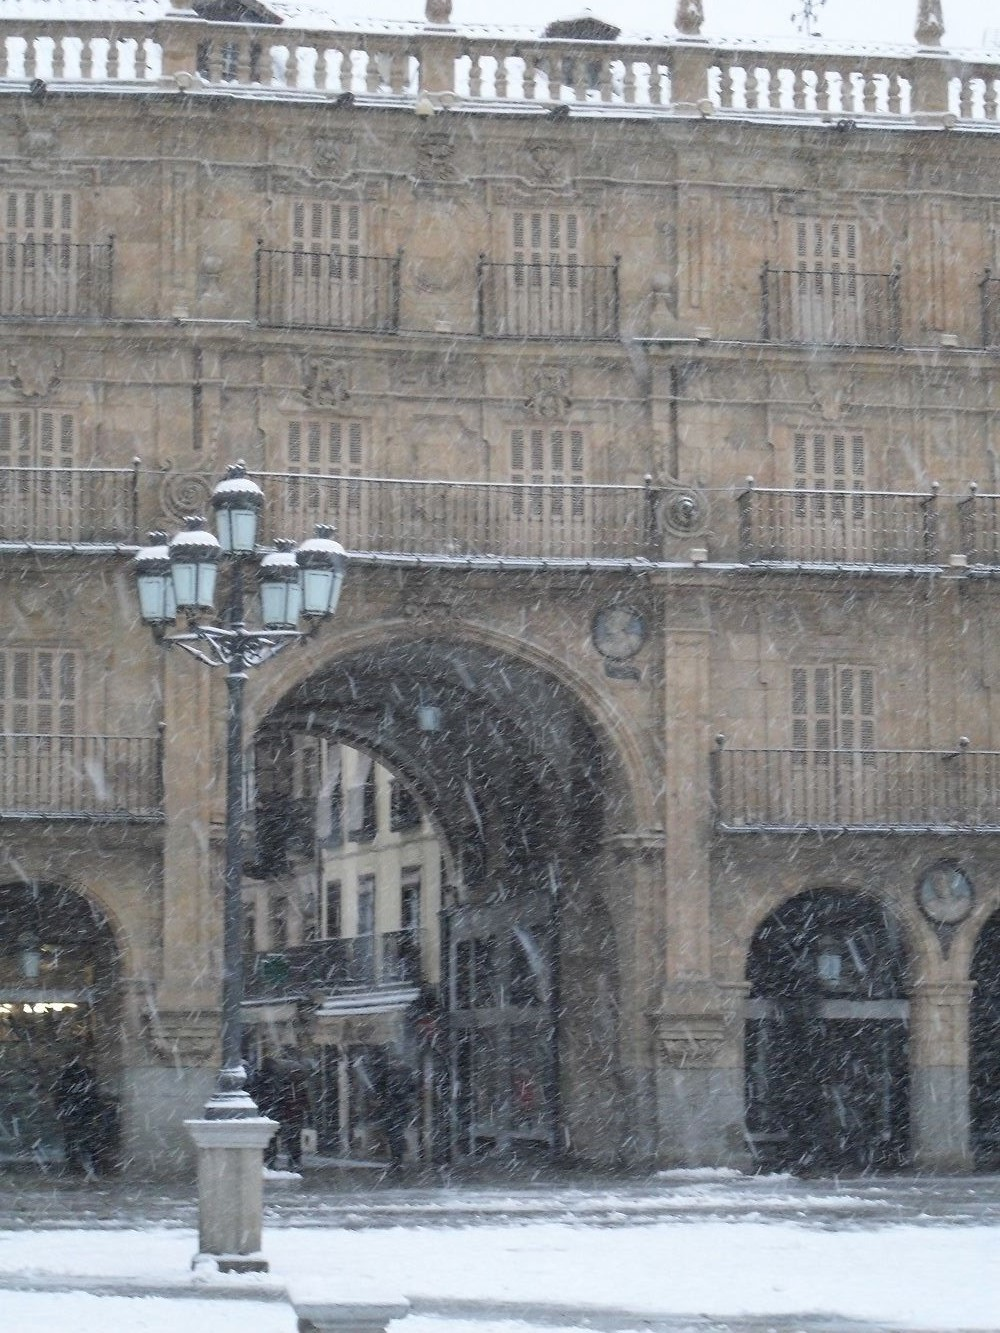 Winter in Salamanca